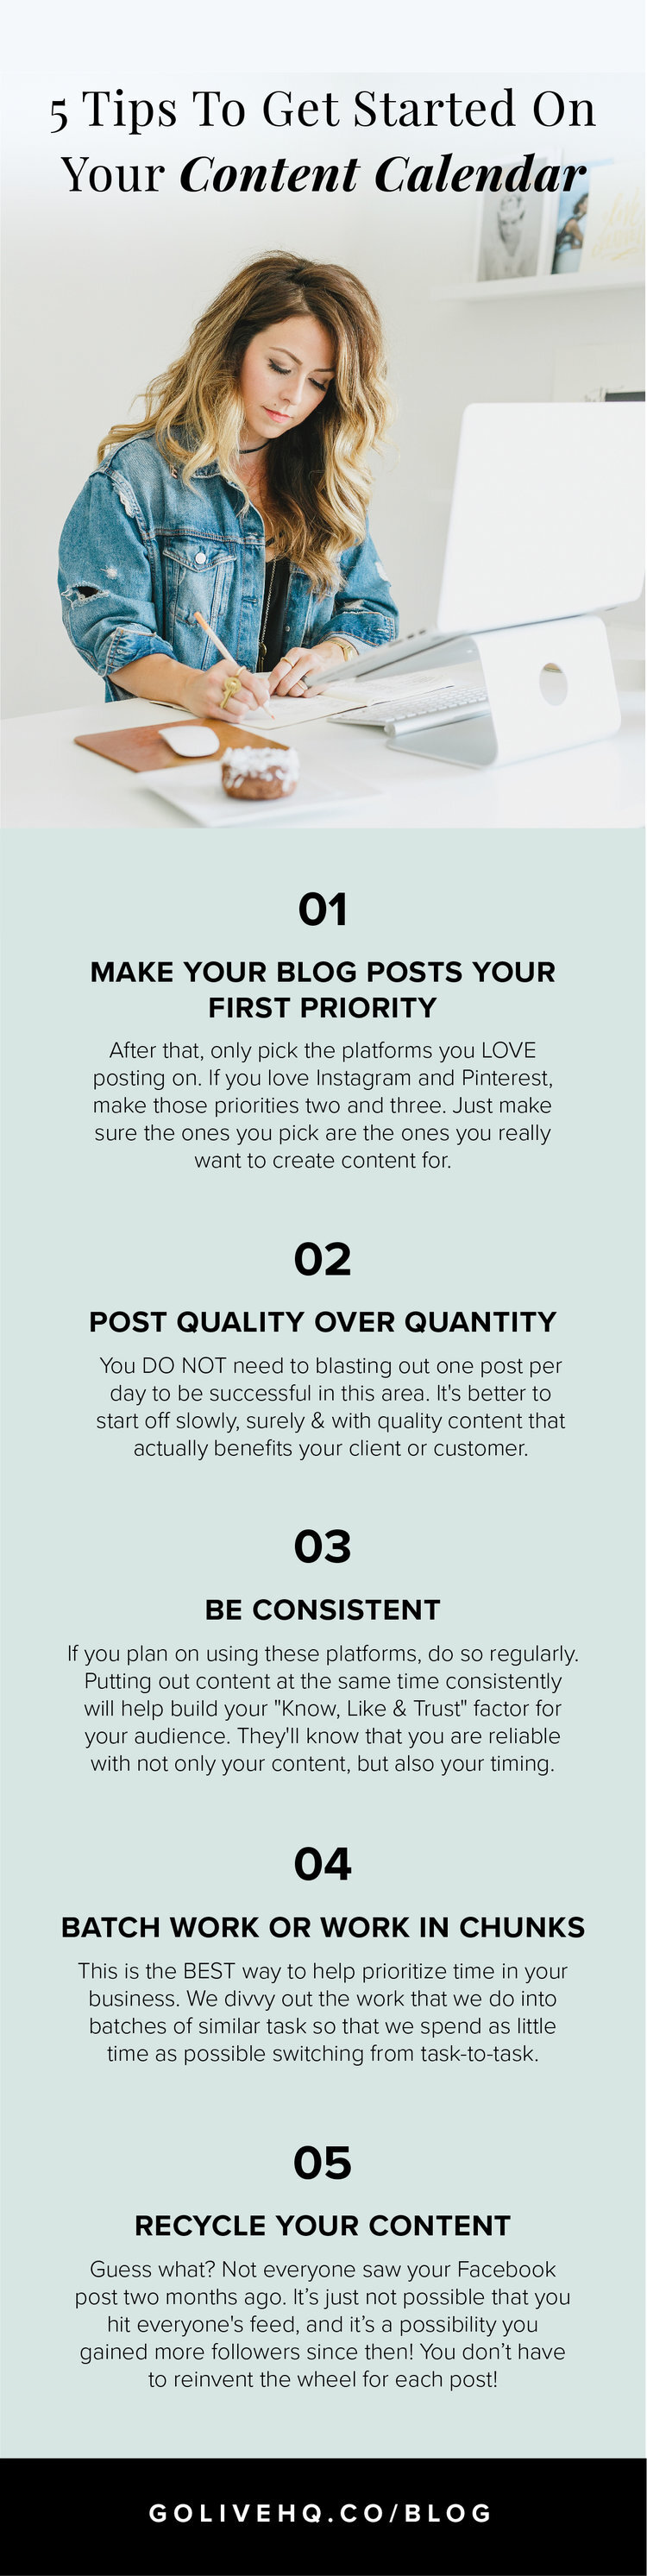 5+Tips+To+Get+Started+On+Your+Content+Calendar+_+By+Go+Live+HQ.jpg